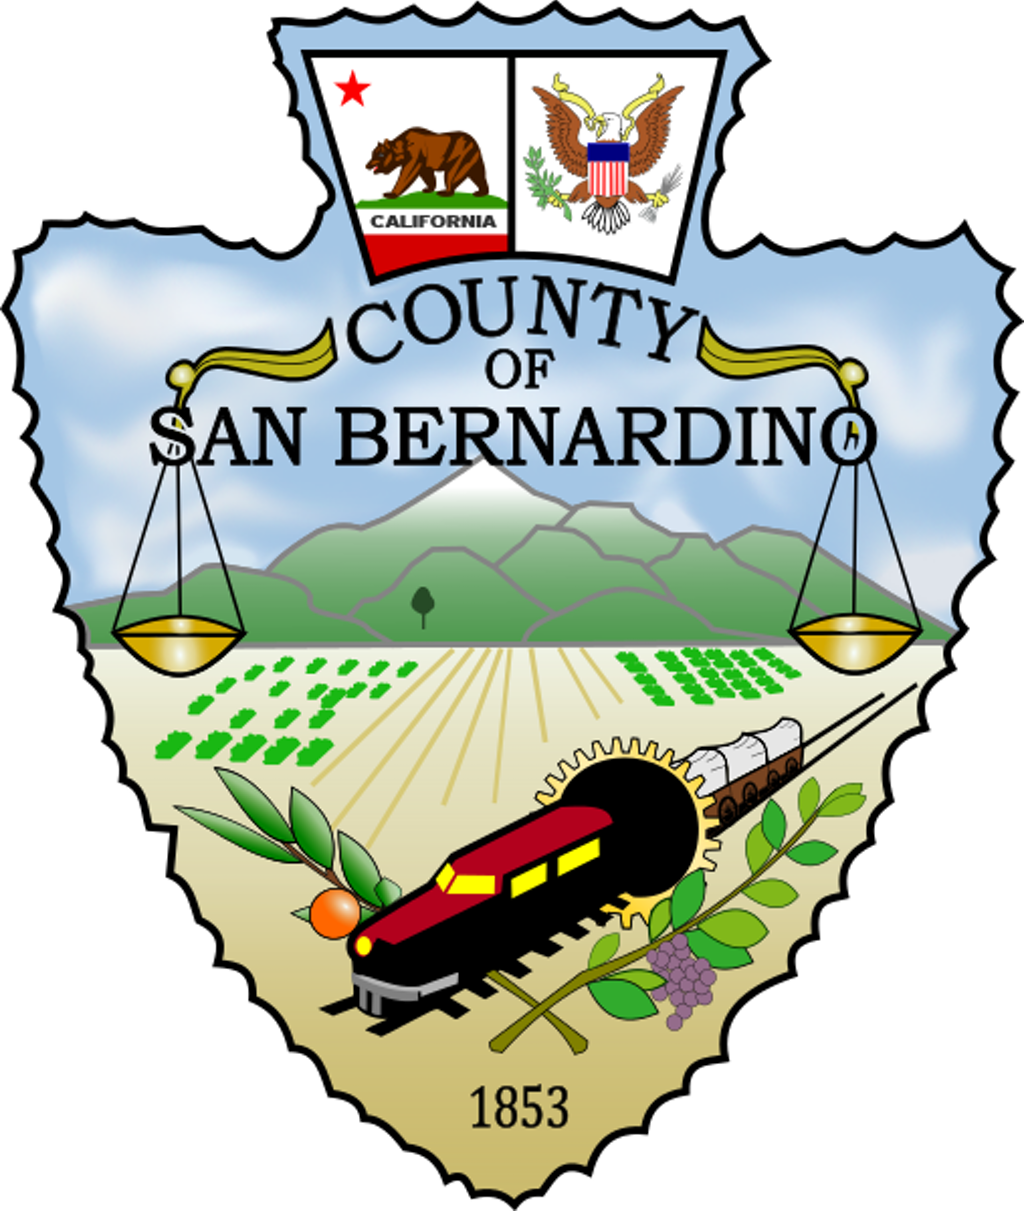 OUTLIER COUNTIES: San Bernardino, California Shares Problematic Patterns of Neighboring Counties